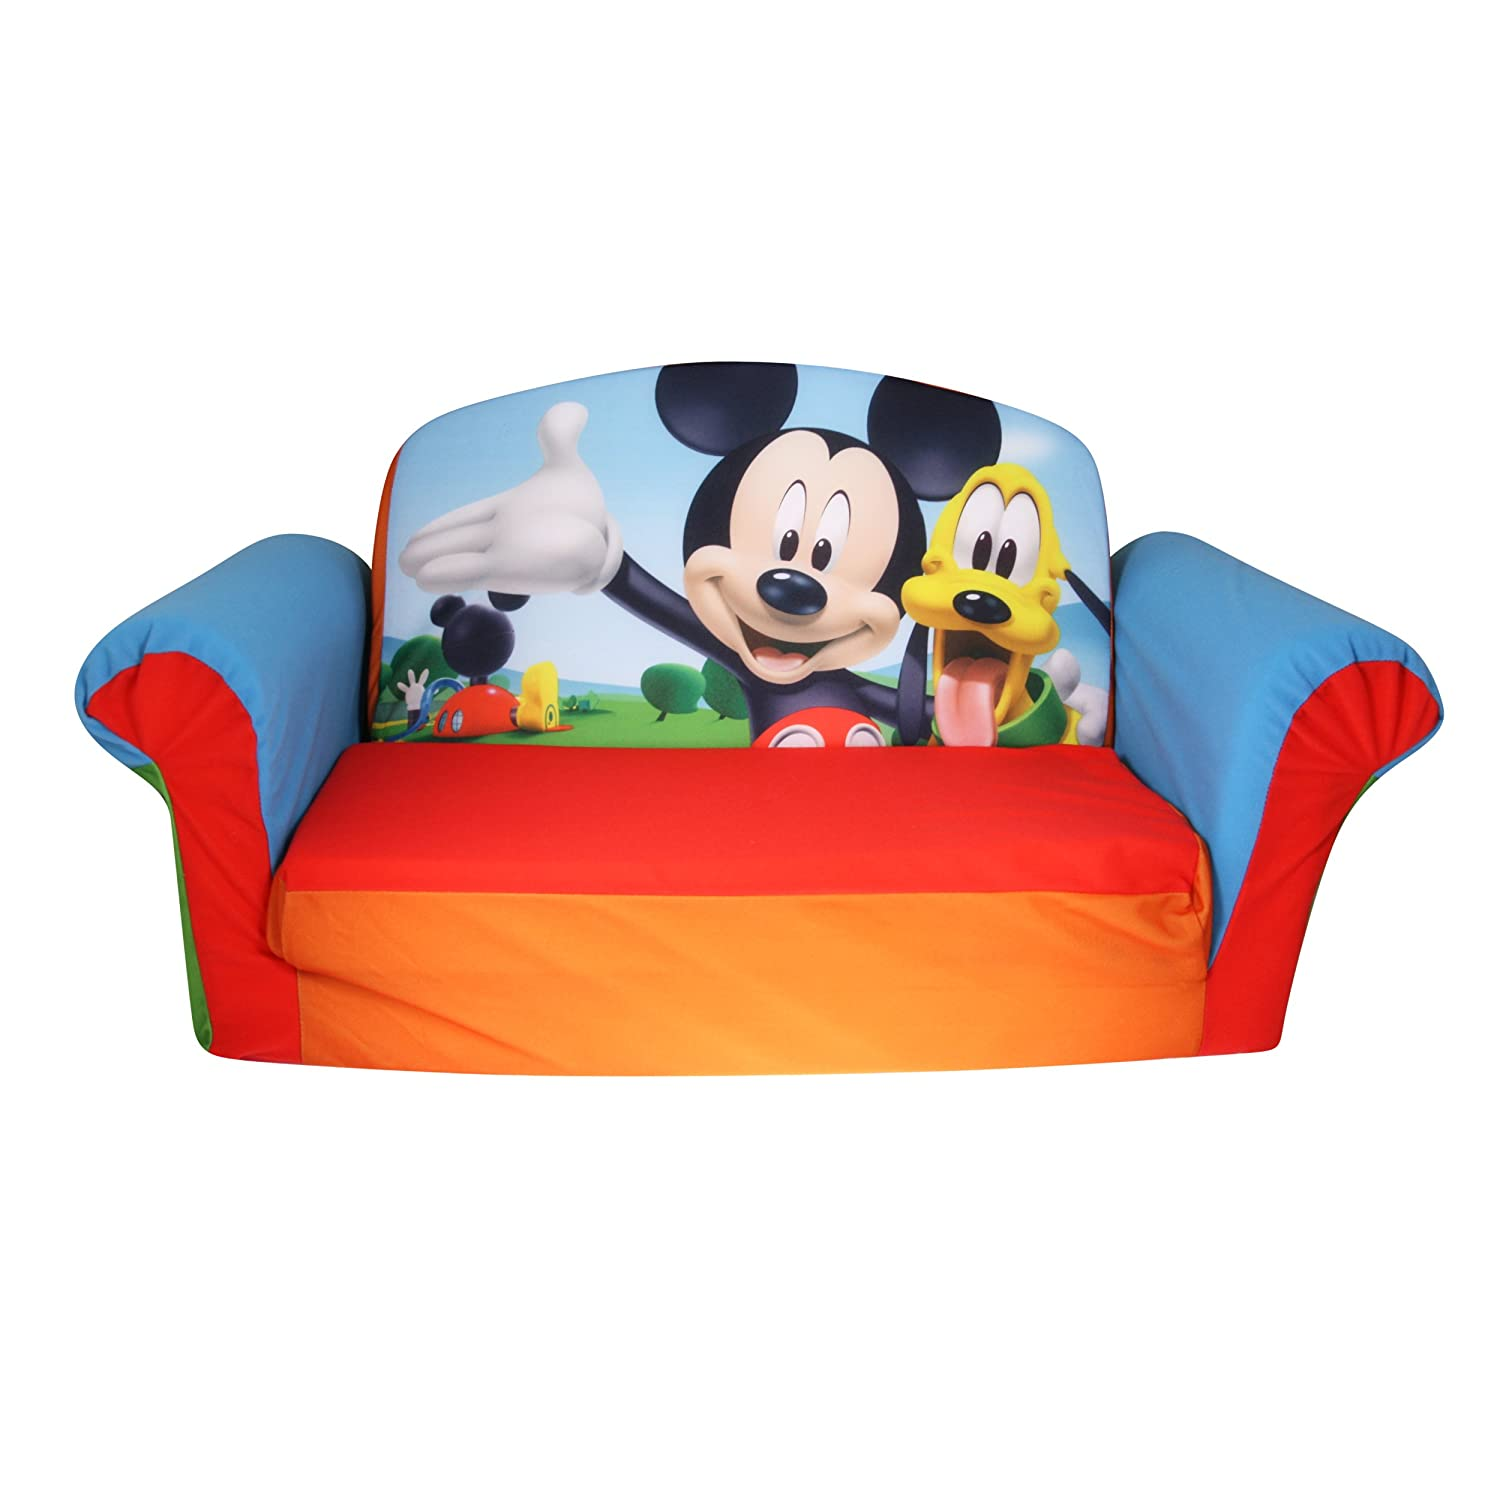 amazoncom marshmallow furniture childrens upholstered 2 in 1 flip open sofa disney mickey mouse club house by spin master toys games - Toddler Sofa